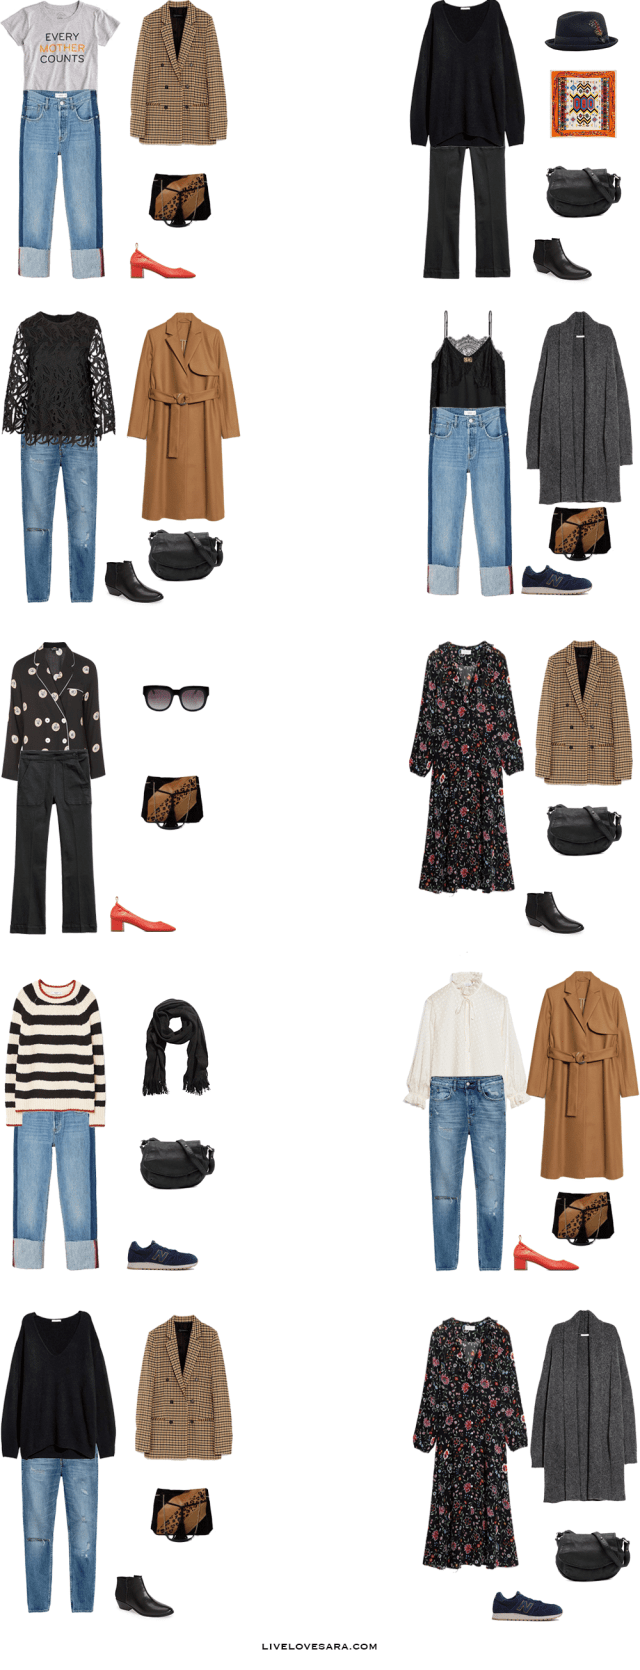 What to Pack for Paris, France Packing Light List Outfit Options 1-10 | What to France | Packing Light | Packing List | Travel Light | Travel Wardrobe | Travel Capsule | Capsule |